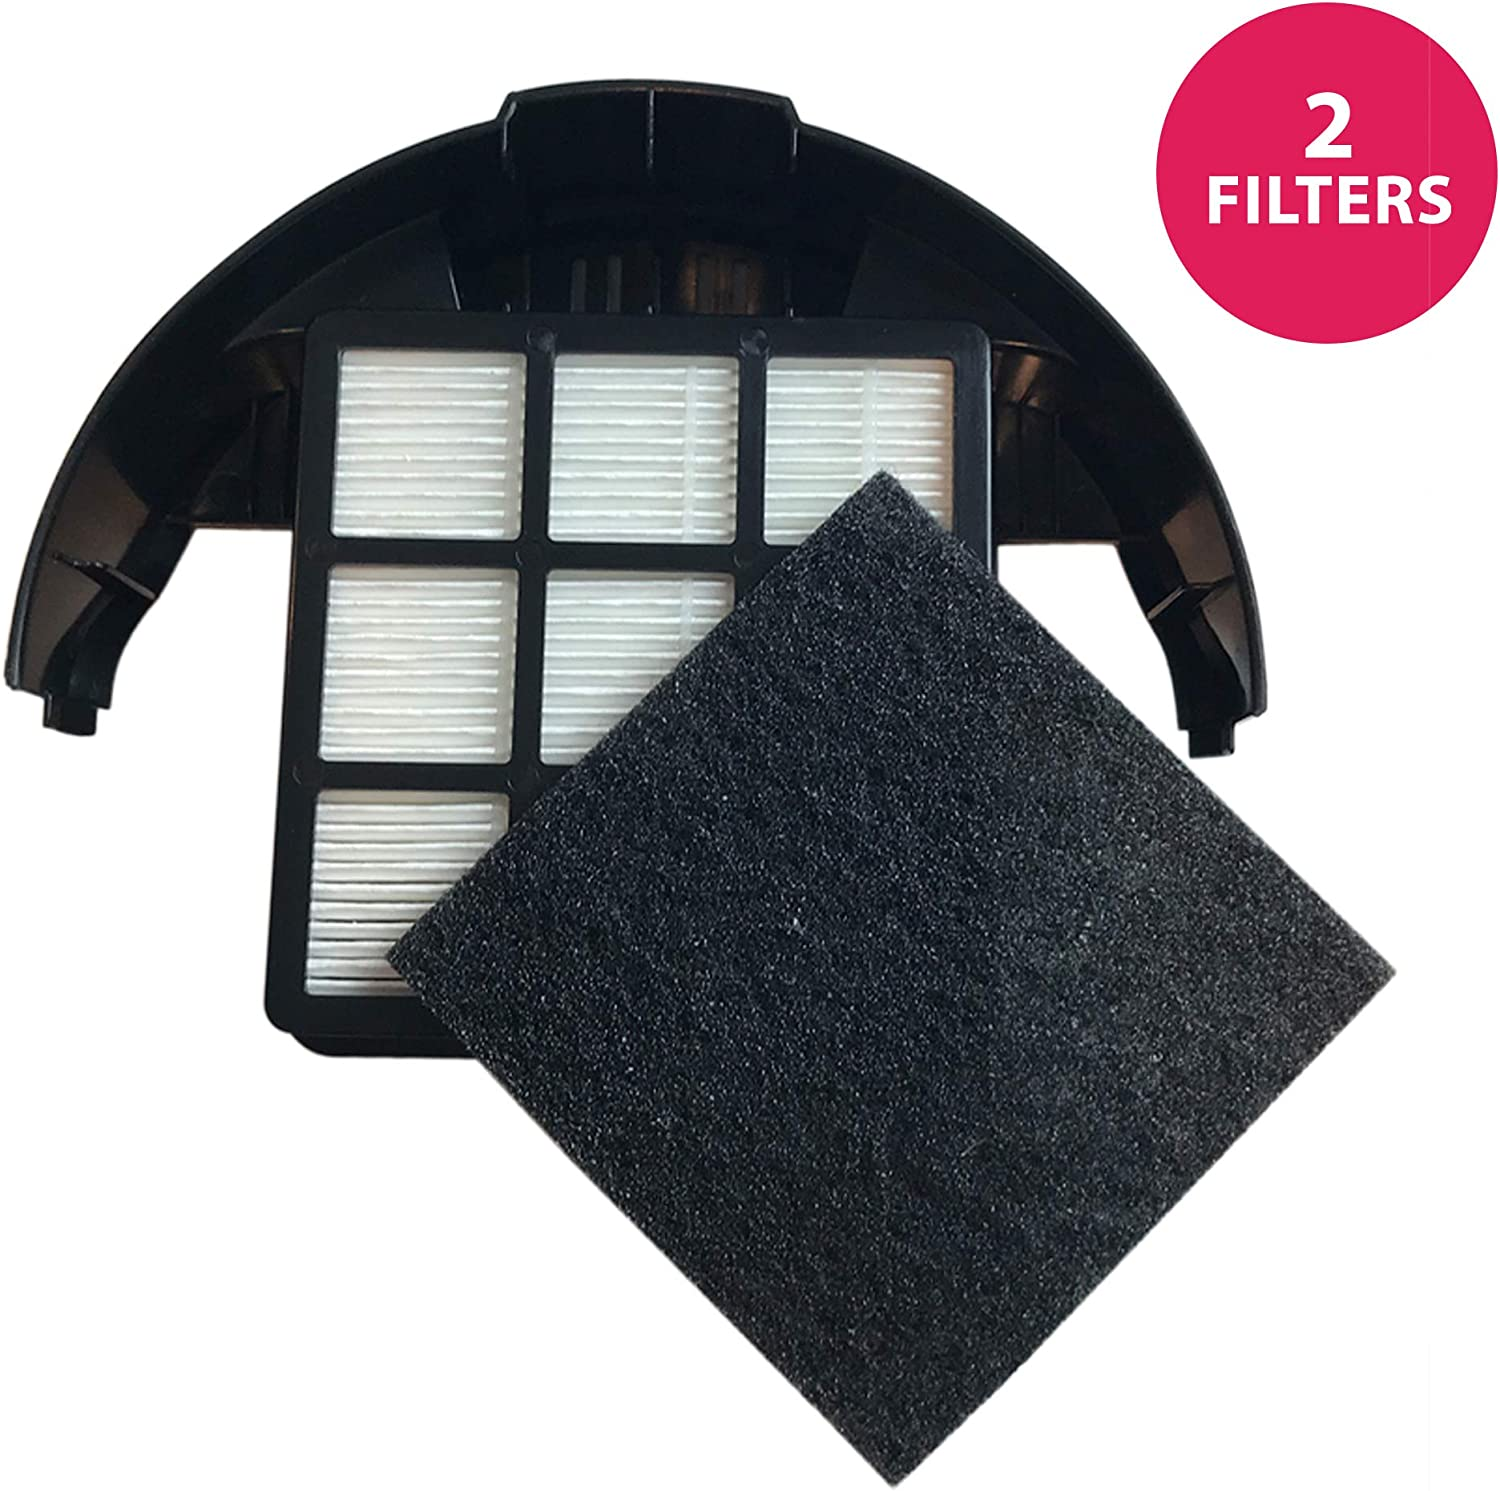 Think Crucial Replacement for Hoover T-Series HEPA Style & Carbon Filter Fits T-Series Rewind, Compatible with Part # 303172001, 303172002 & 902404001